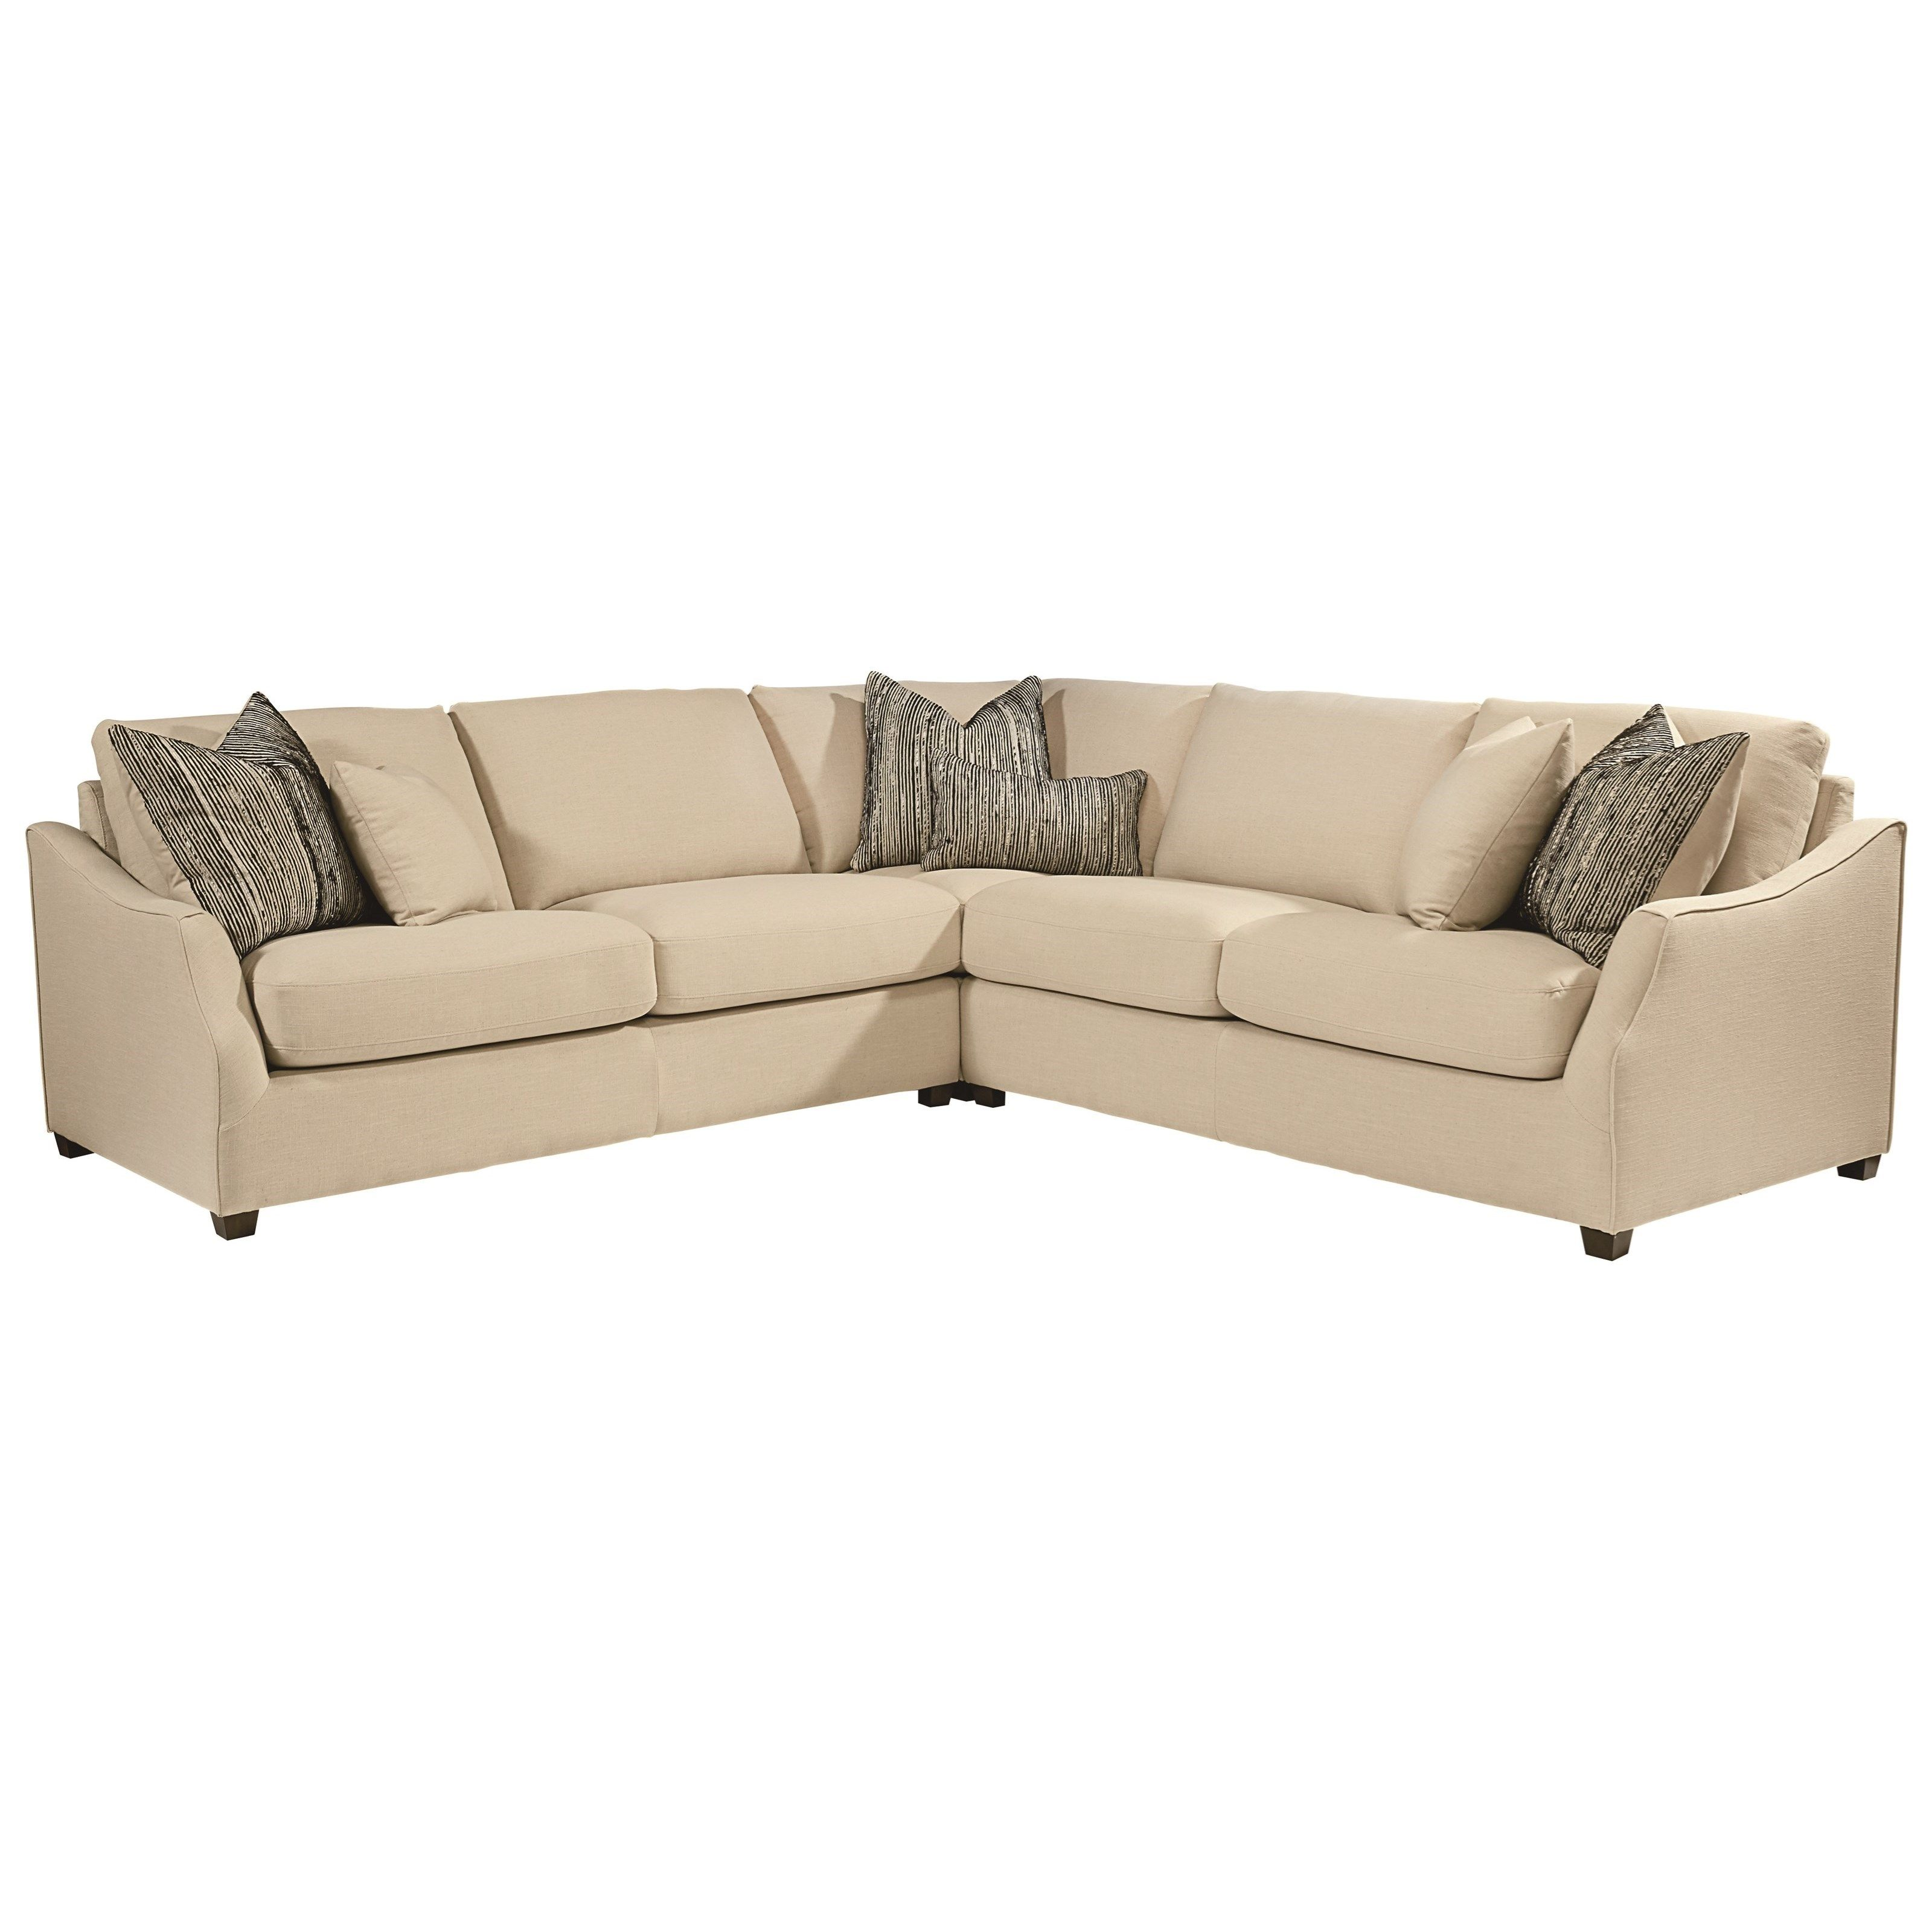 seats pewter becker trim products cornell height sofas world item sectional mn threshold furniture sofa vendor width